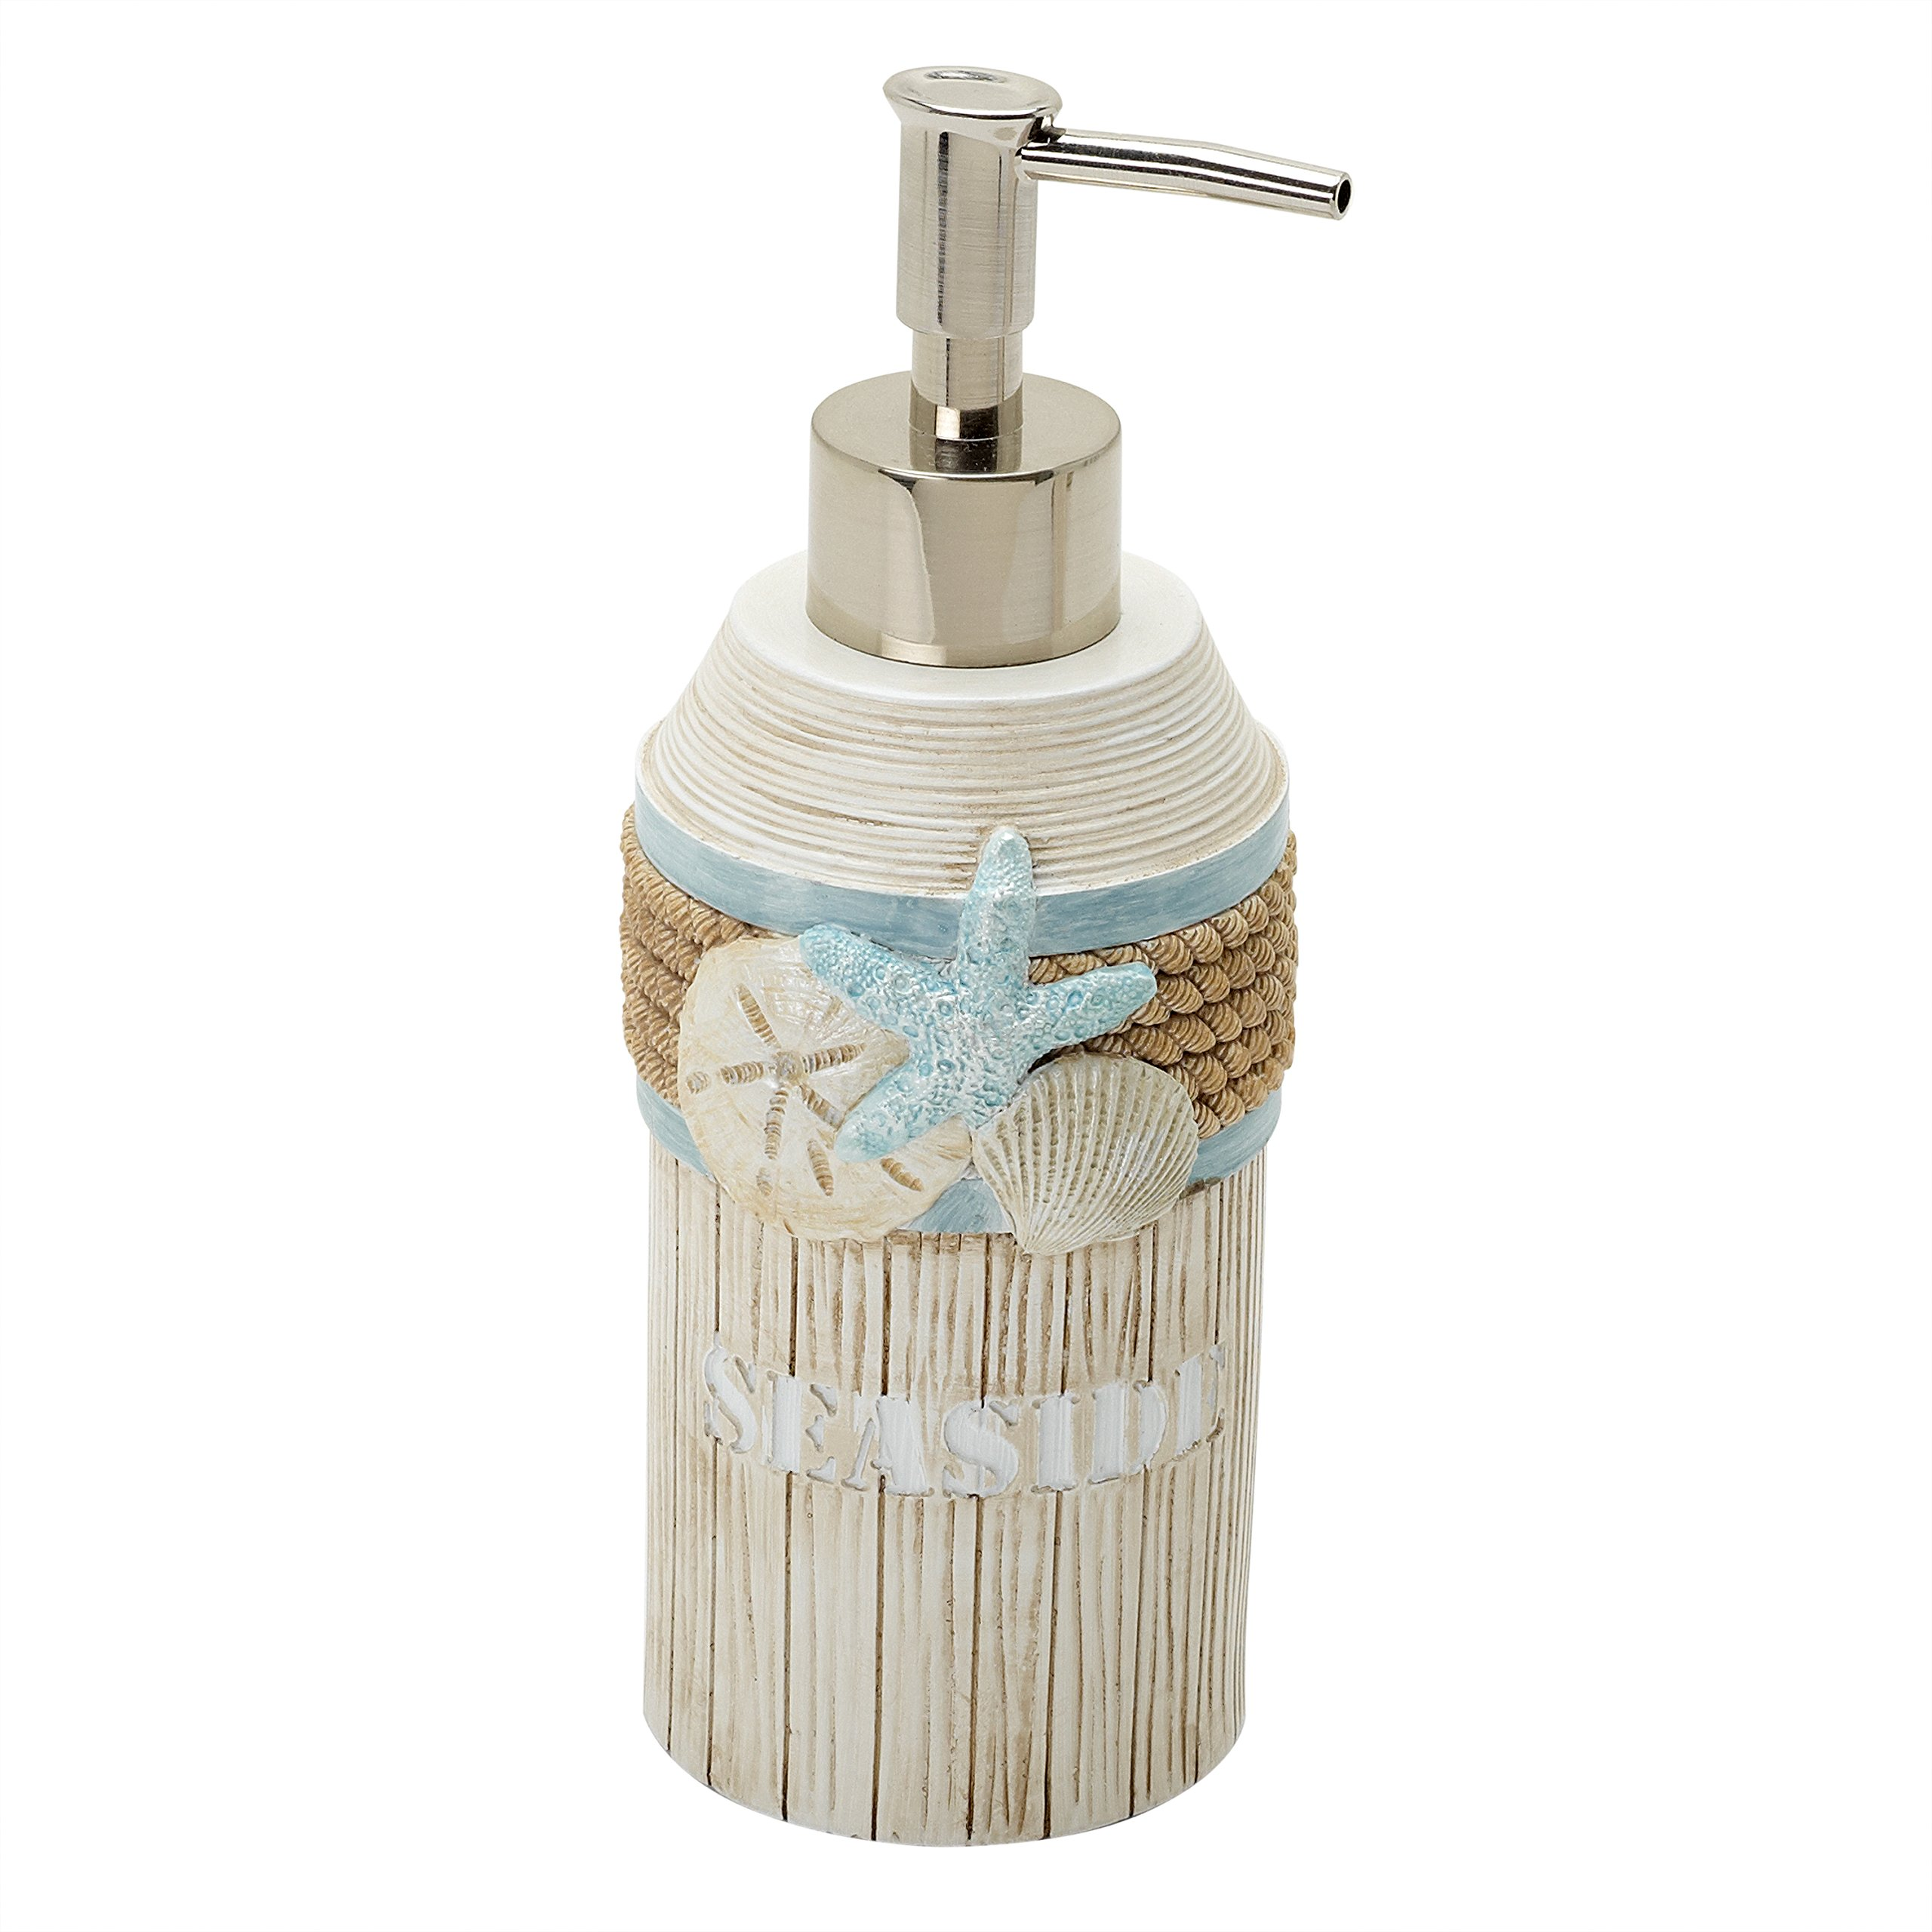 Zenna Home Seaside Serenity Liquid Hand Sanitizer, Soap or Lotion Dispenser, Coastal Beach Theme